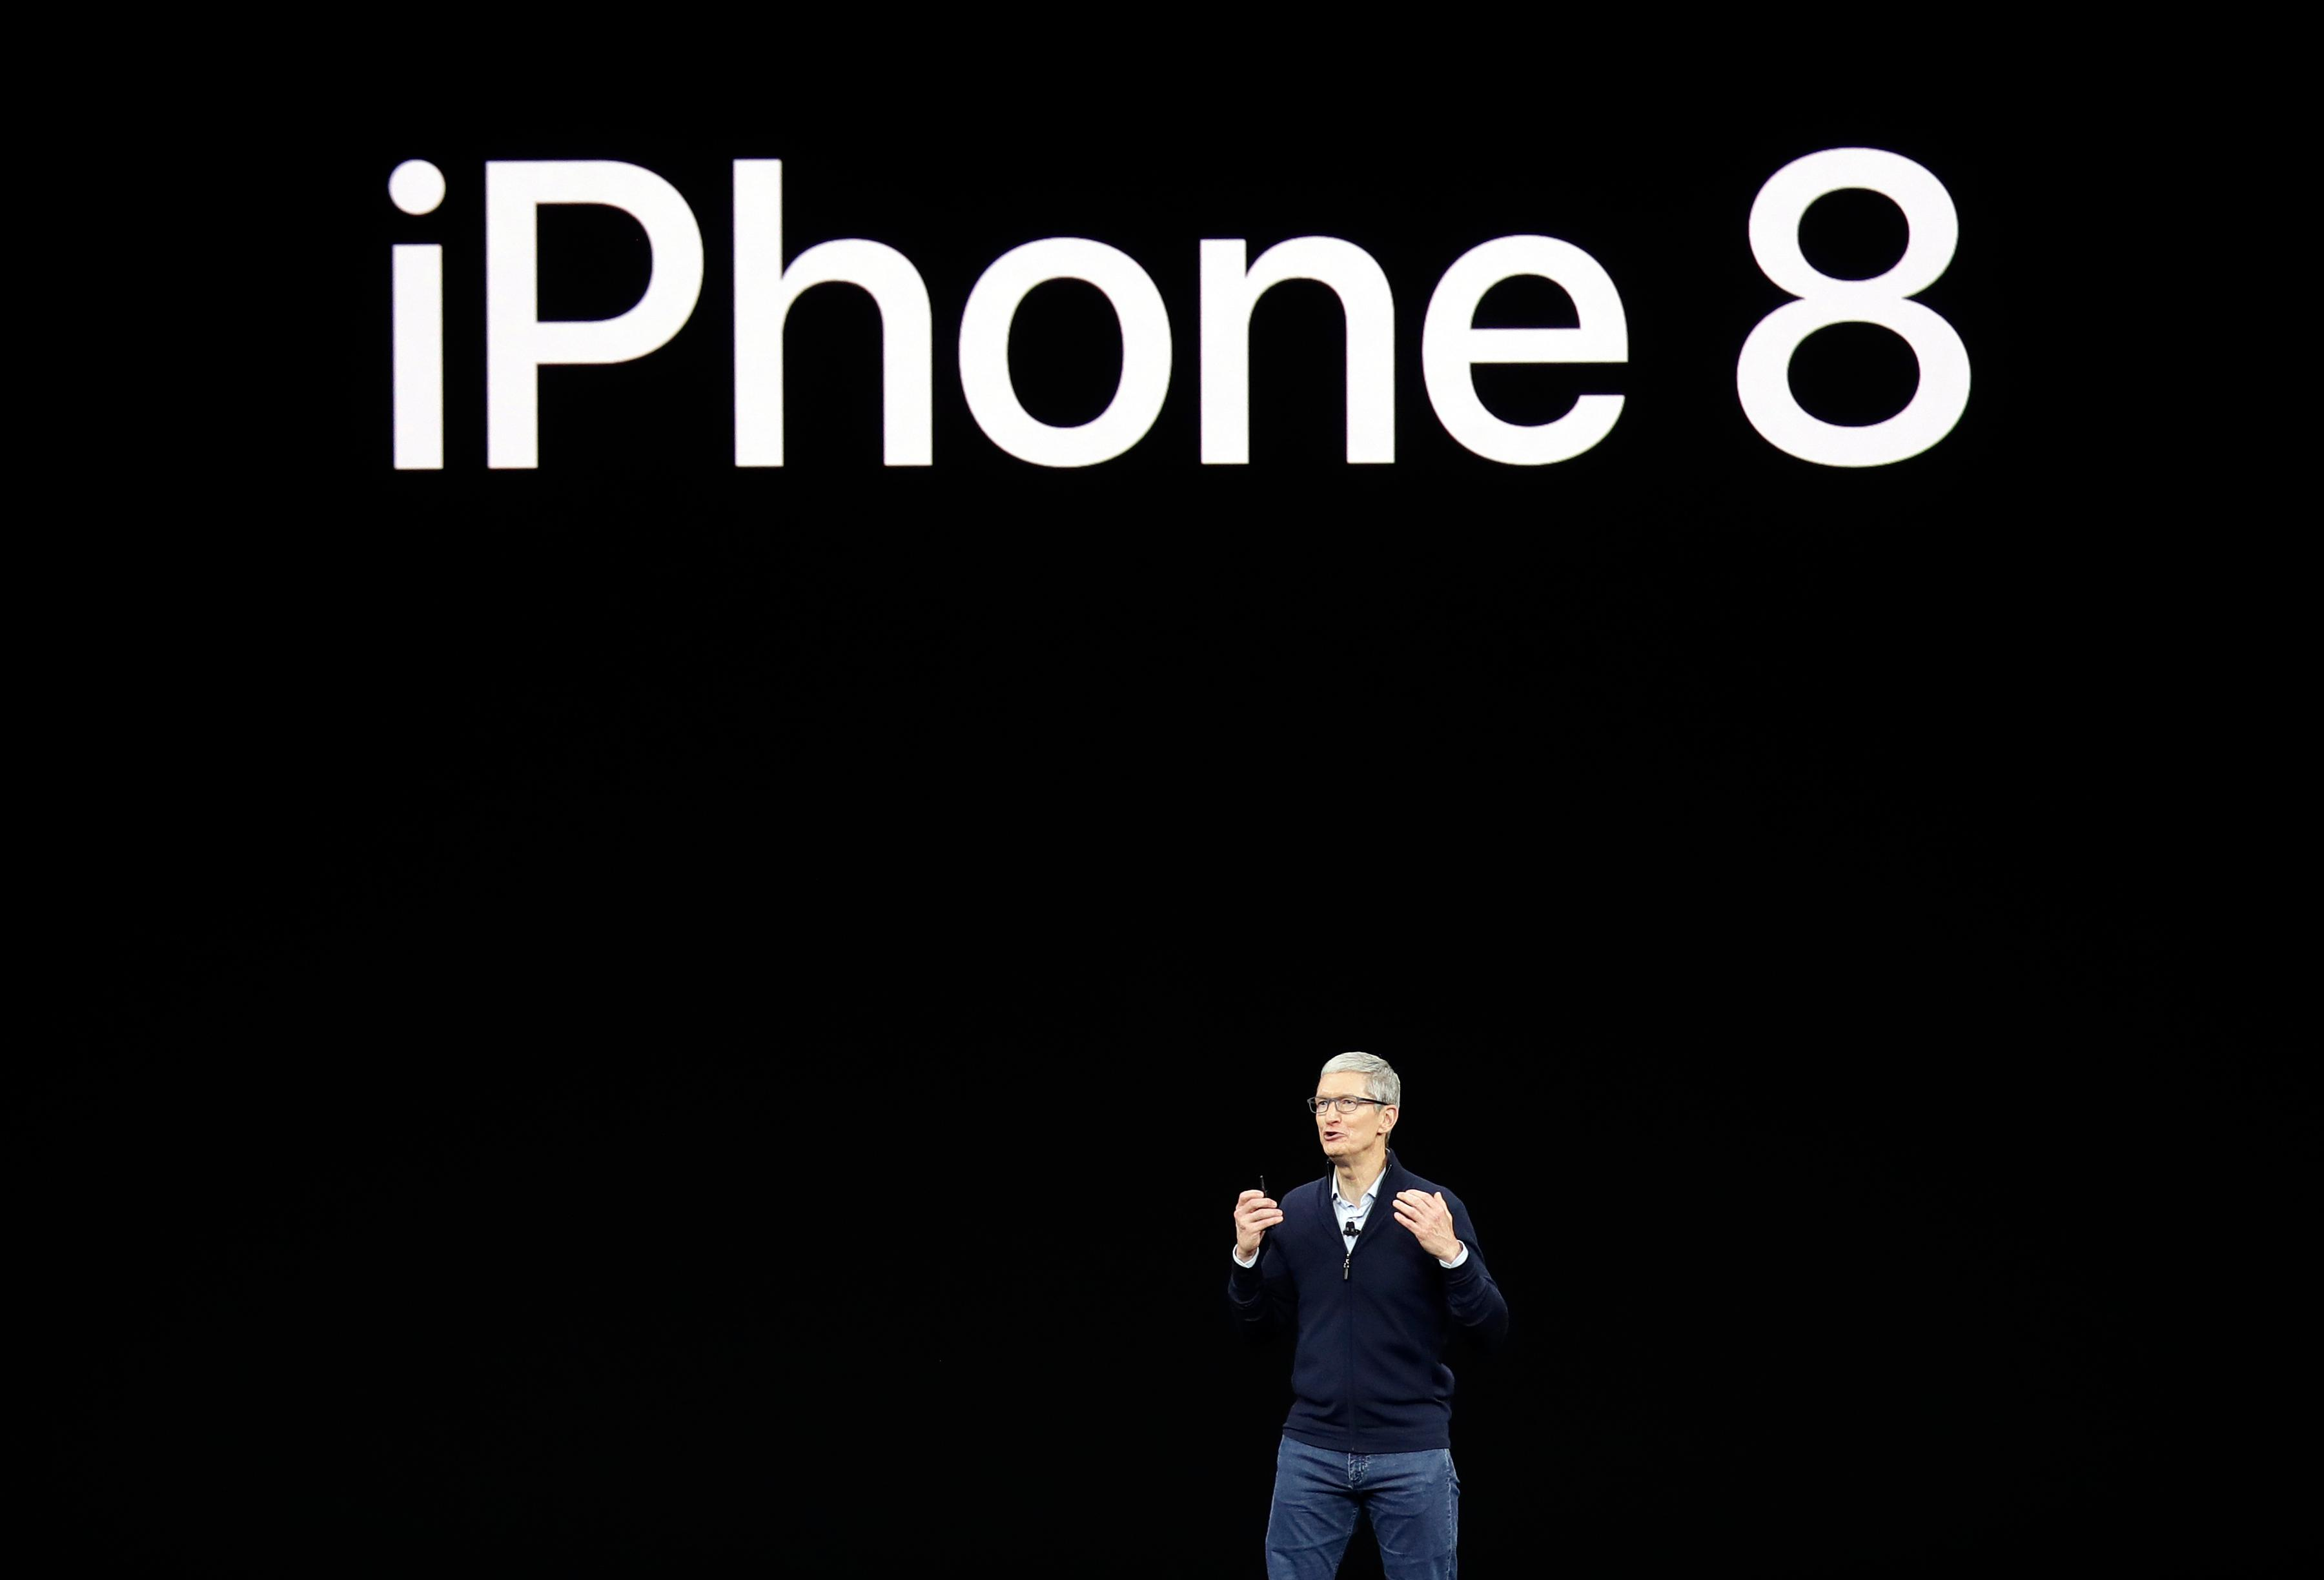 Apple CEO Tim Cook, discusses the new iPhone 8 at the Steve Jobs Theater on the new Apple campus on Tuesday, Sept. 12, 2017, in Cupertino, Calif. (AP Photo/Marcio Jose Sanchez)